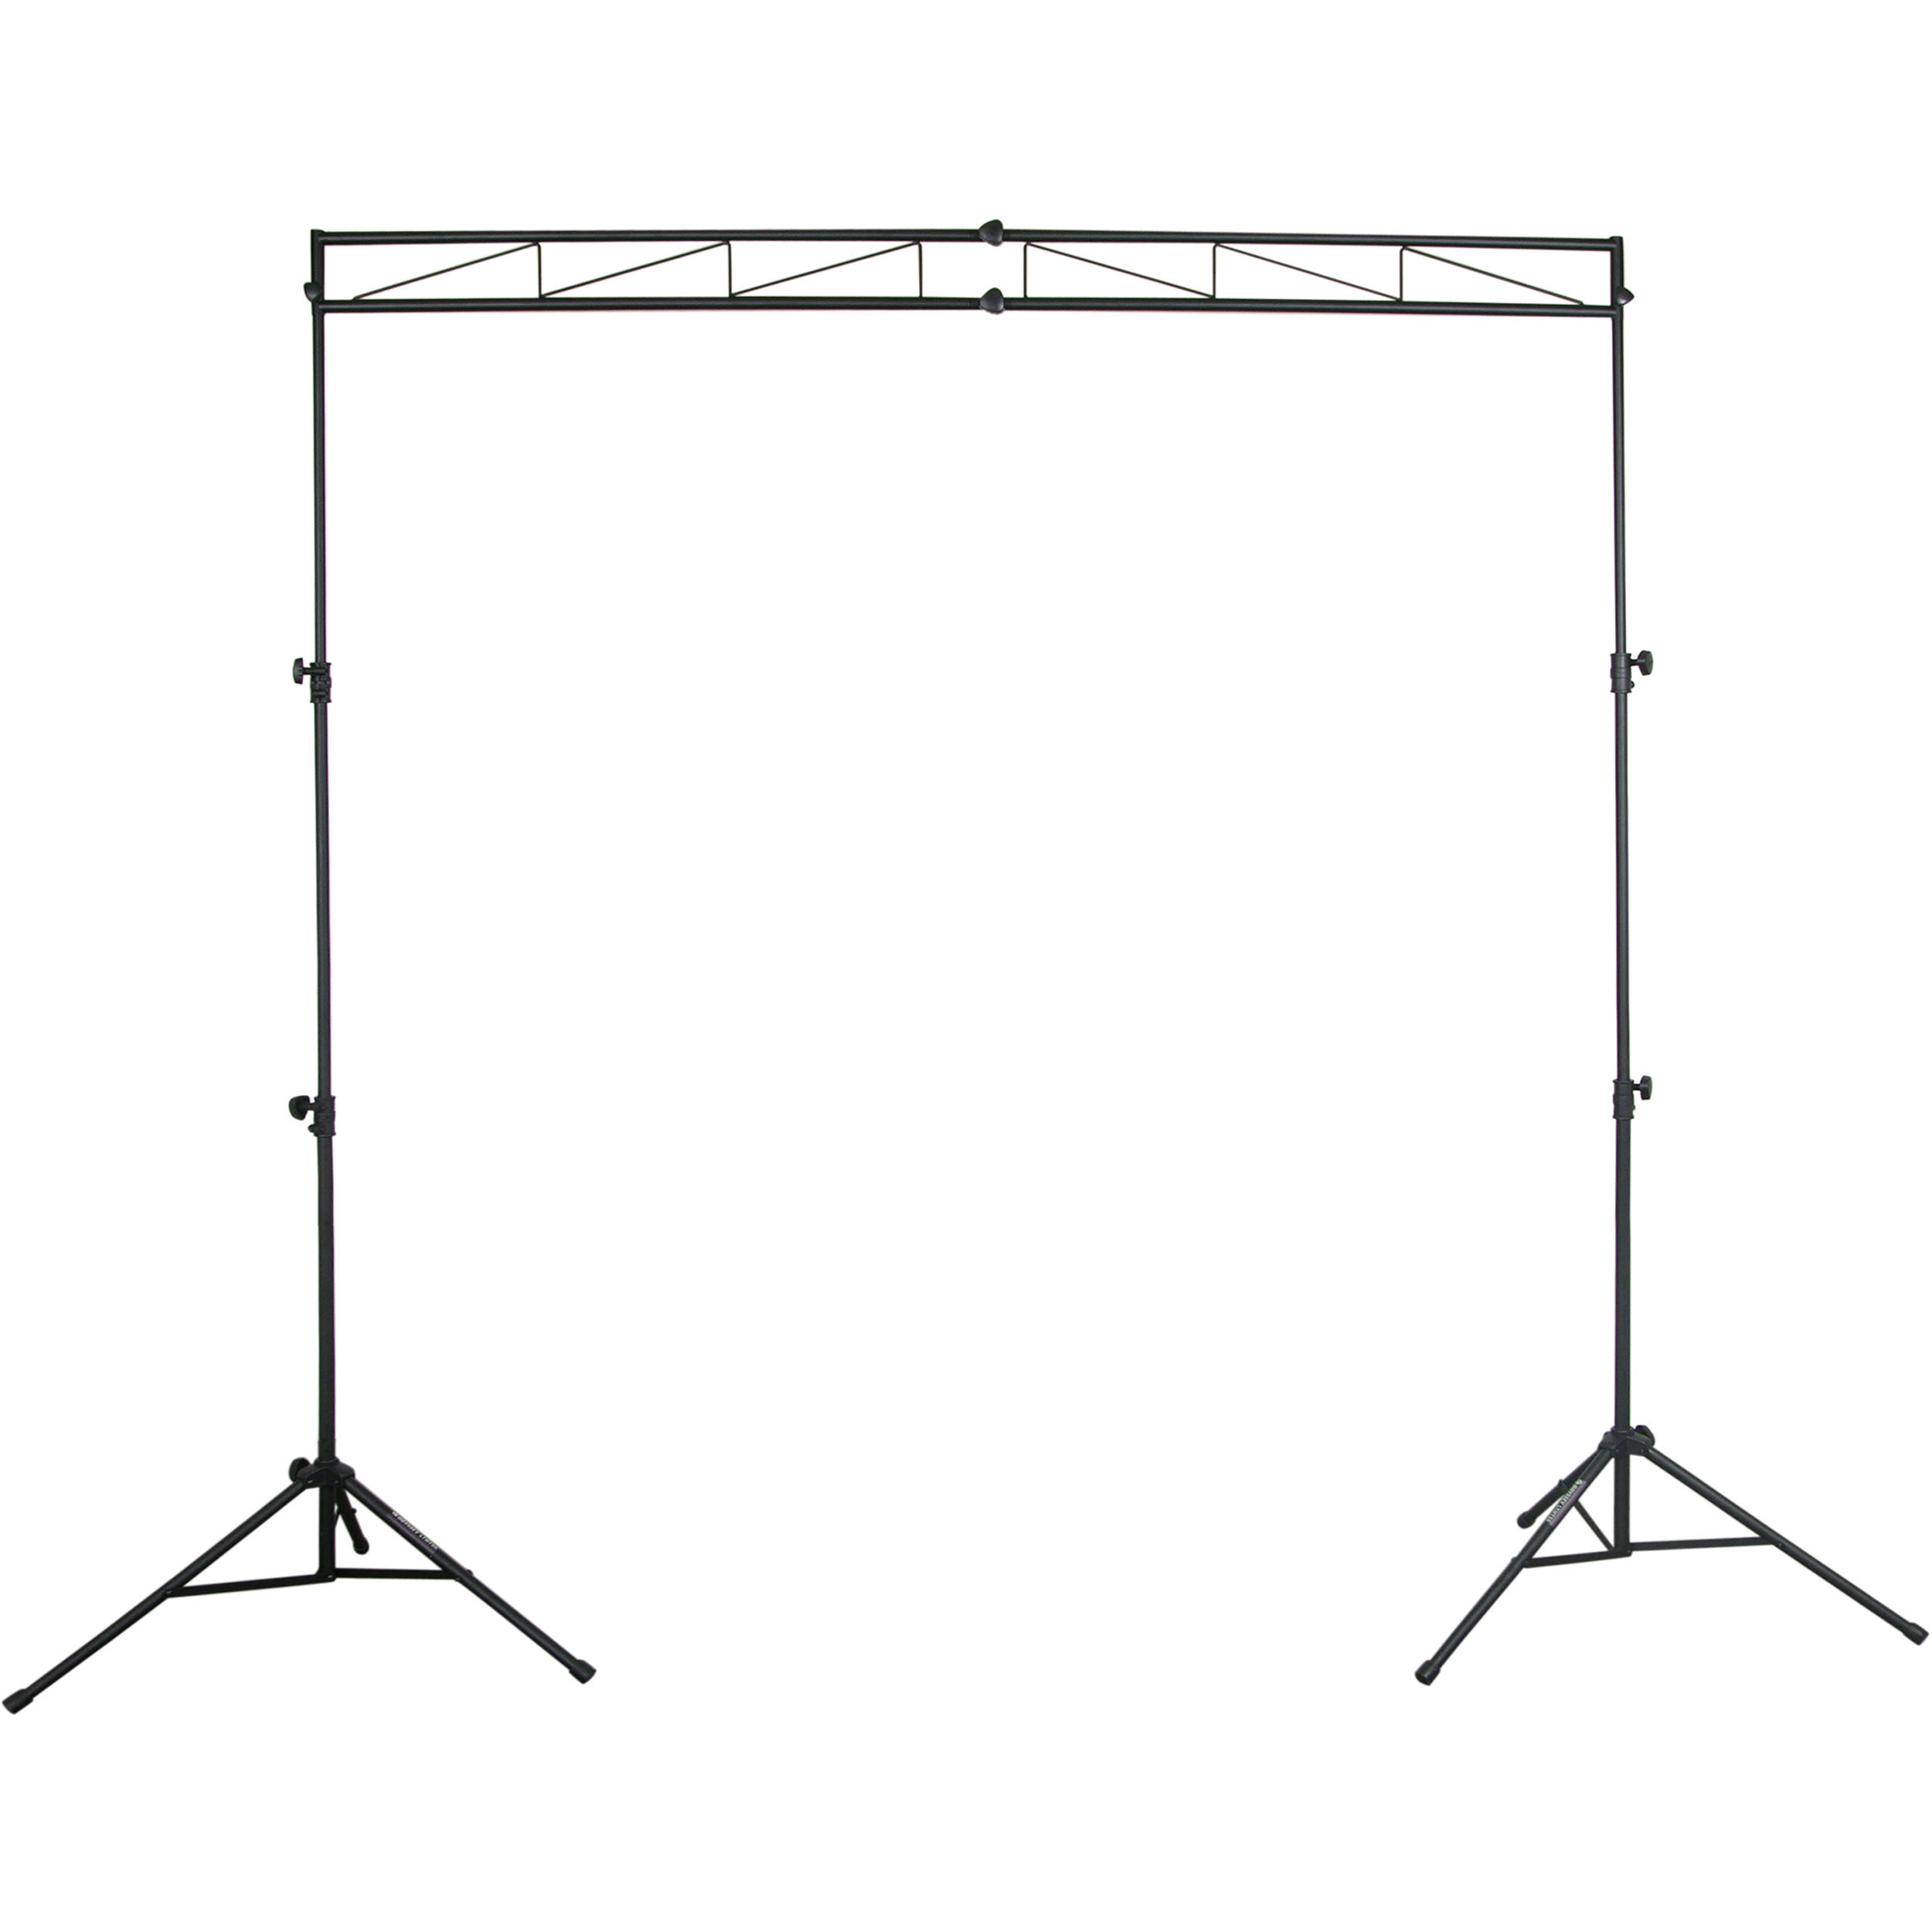 Odyssey Innovative Designs Mts 8 Compact Lighting Mobile Truss System Black